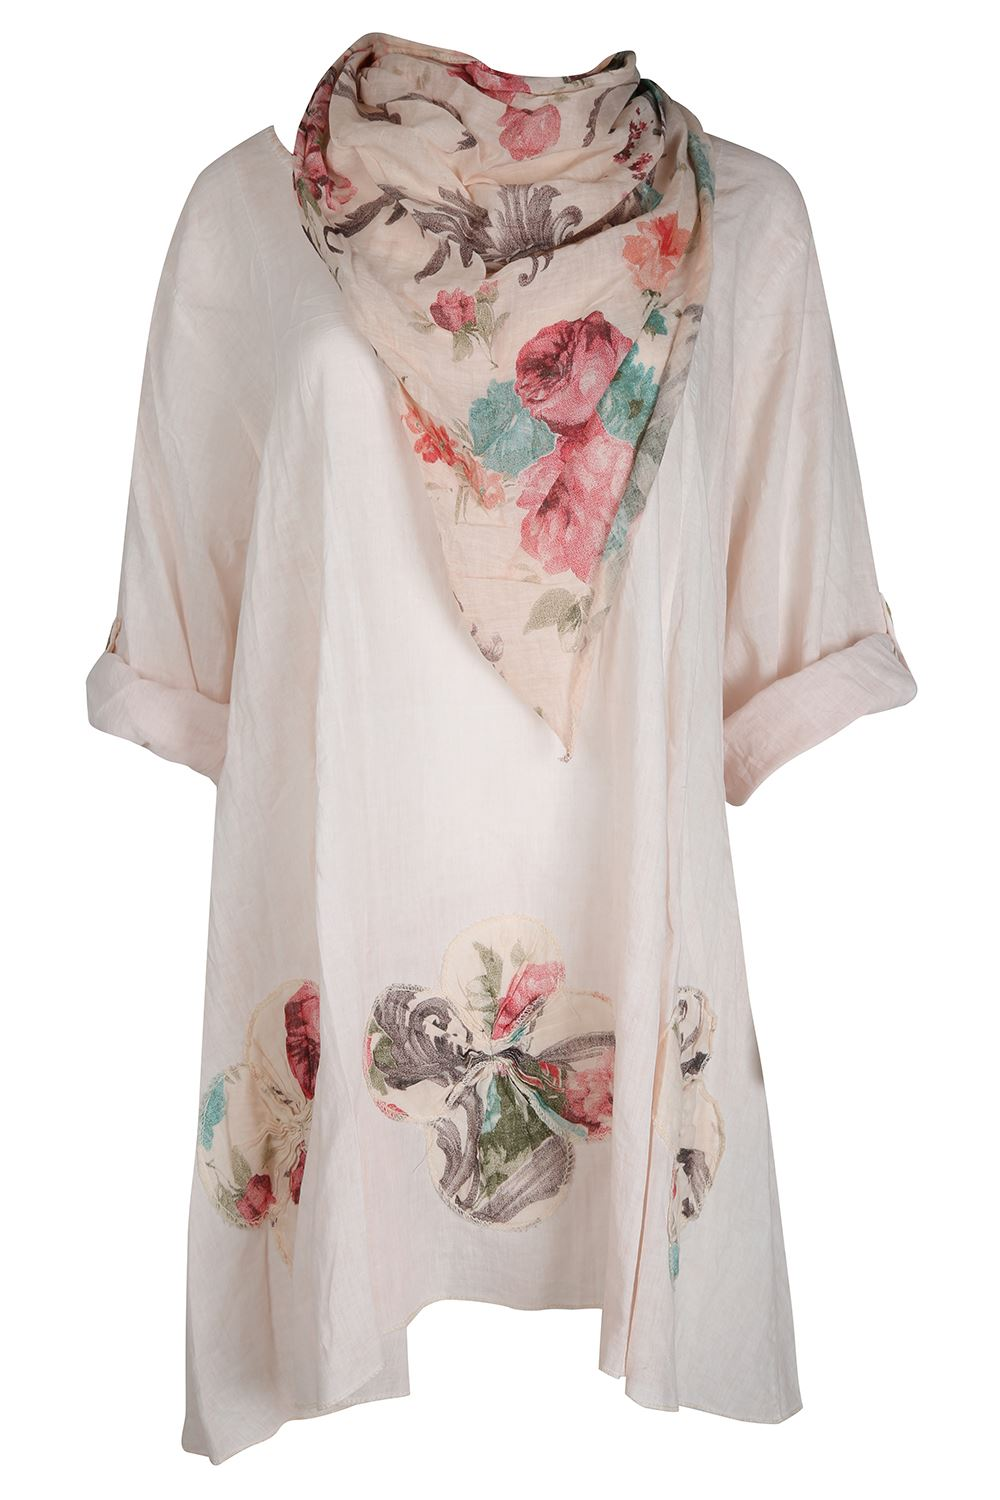 At Cotton Traders we provide a wide range of women's tops, from a fantastic choice of casual off-duty options to more formal blouses and smart tops. Whether you choose striped, printed or plain – all our tops and t-shirts for women are comfortable, practical, and available in a range of sizes.